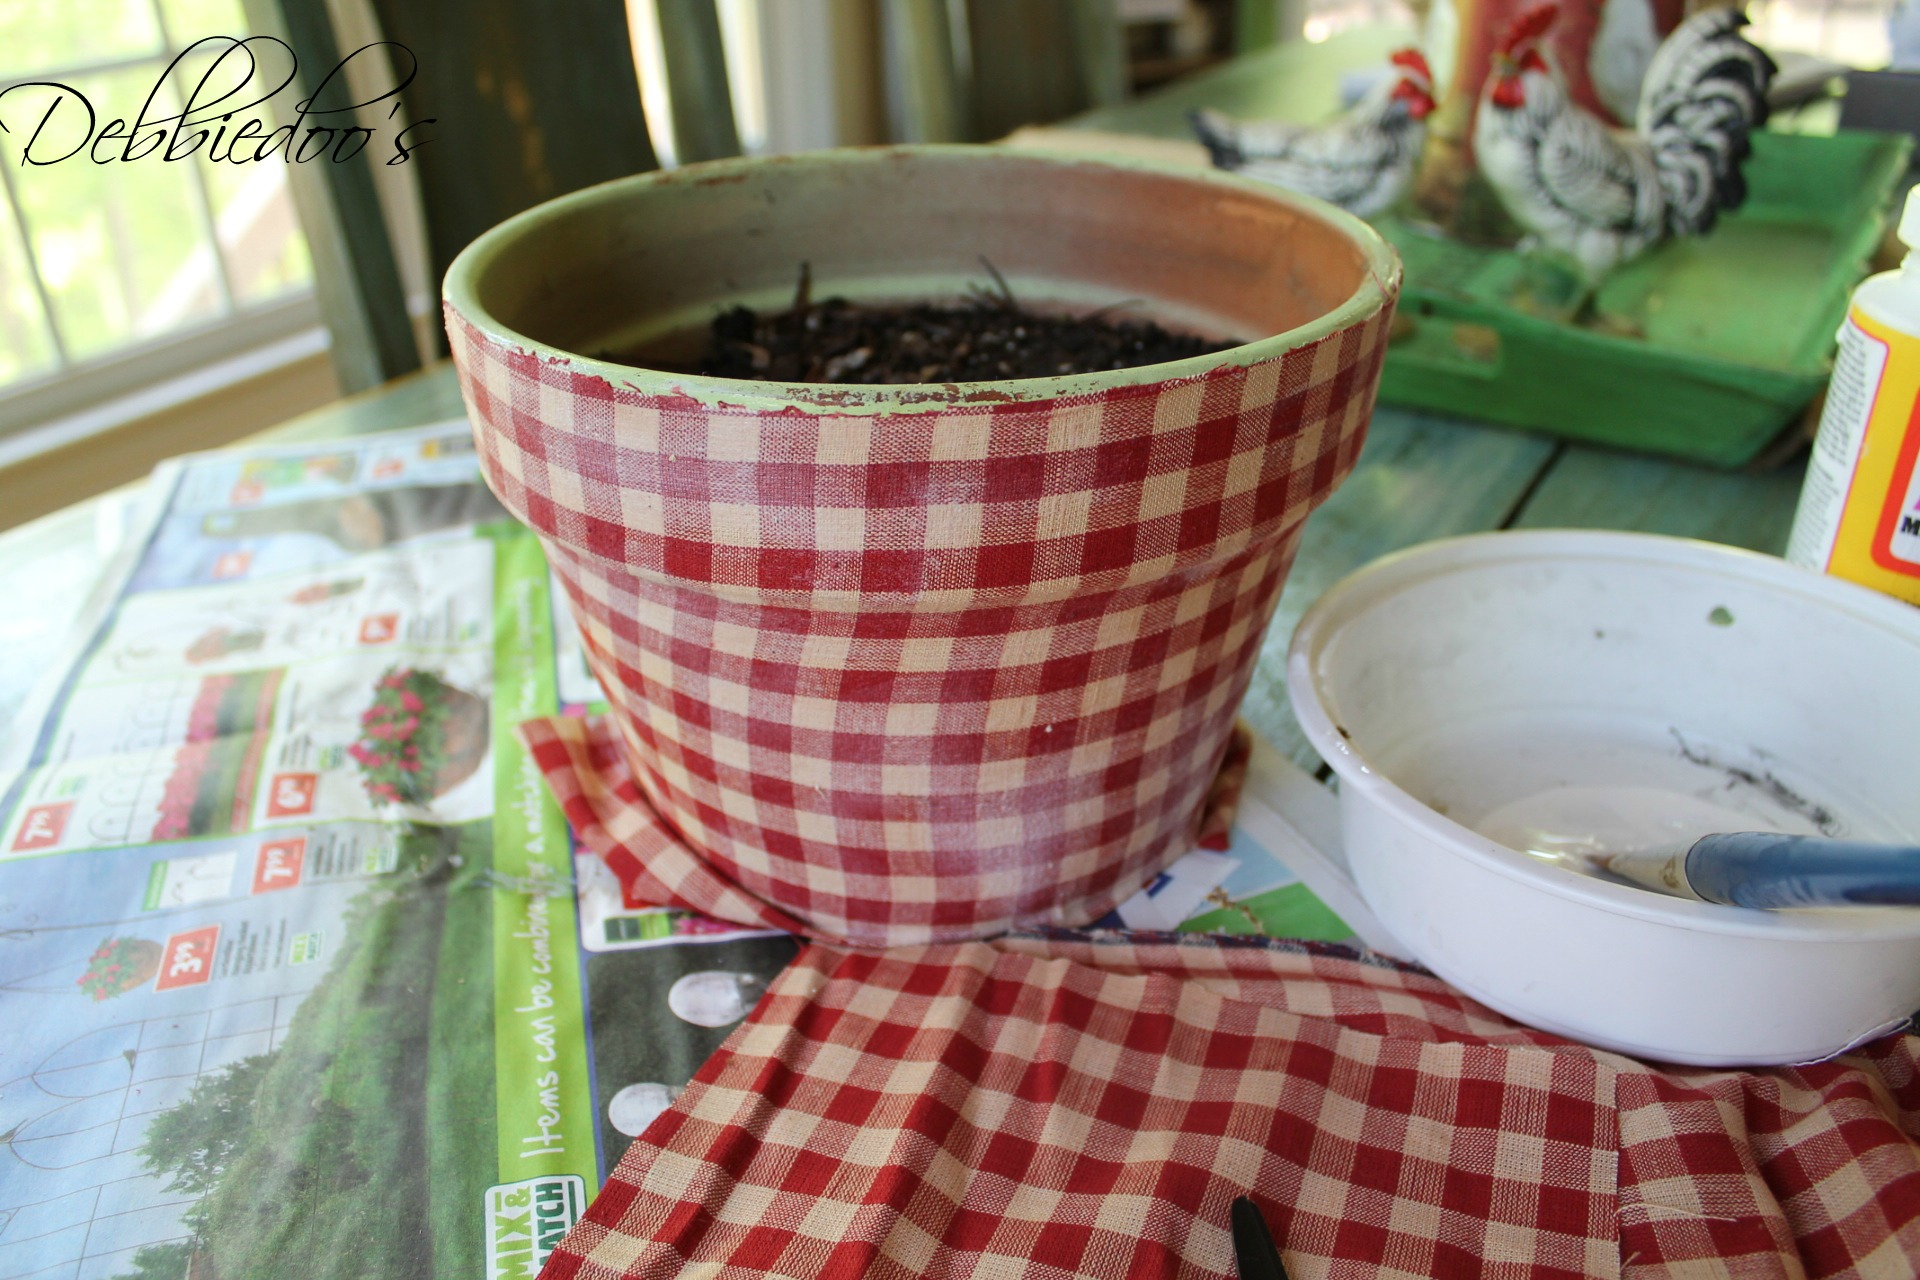 modpodge-pot-004 How to mod podge a terra cotta pot with fabric